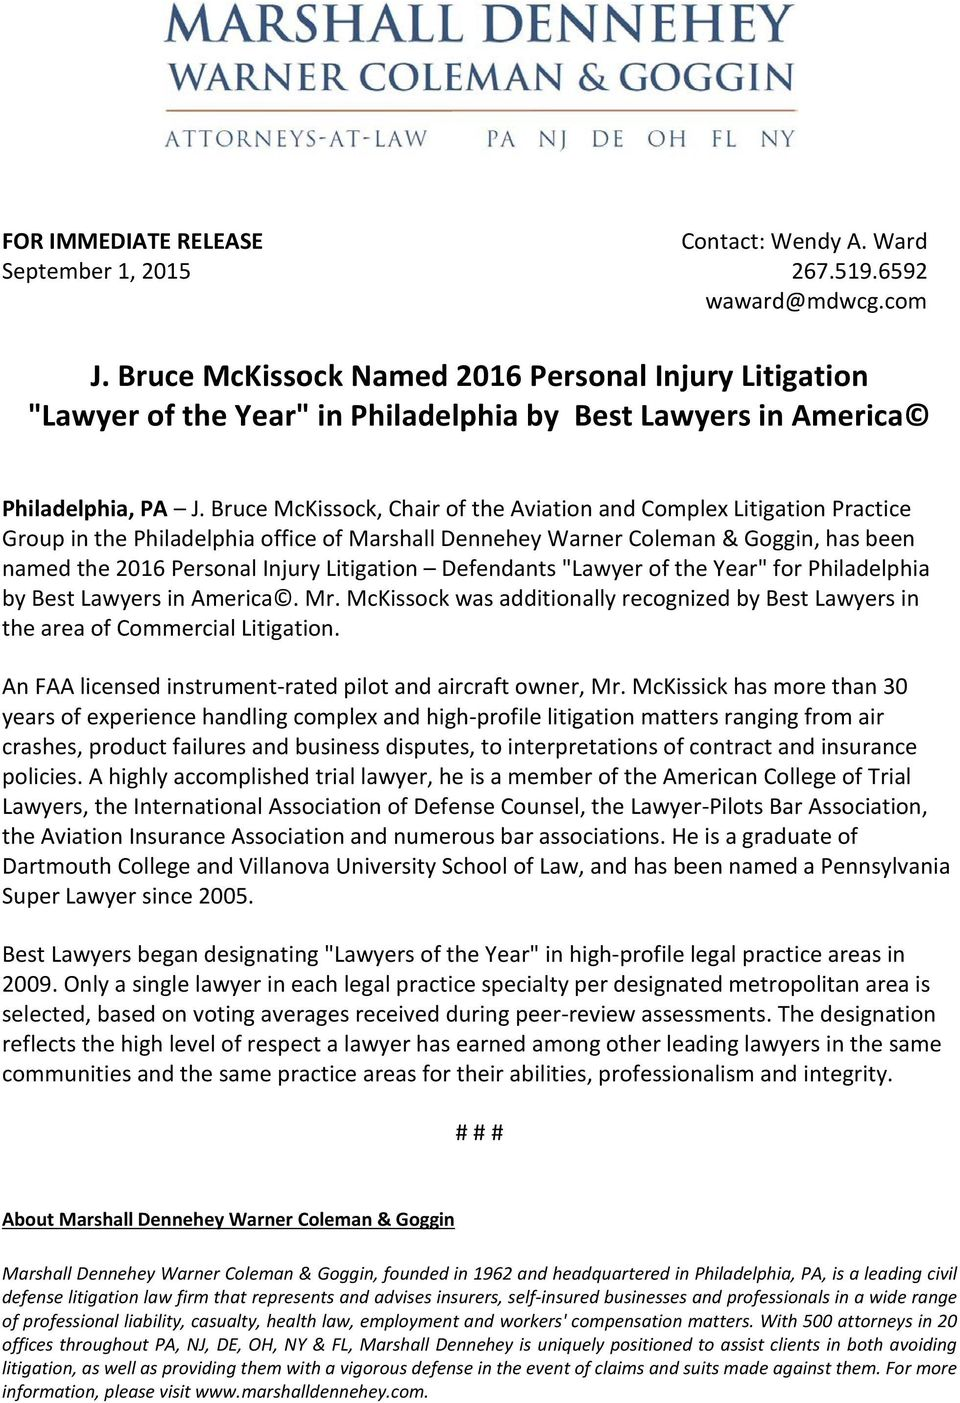 "Litigation Defendants ""Lawyer of the Year"" for Philadelphia by Best Lawyers in America. Mr. McKissock was additionally recognized by Best Lawyers in the area of Commercial Litigation."